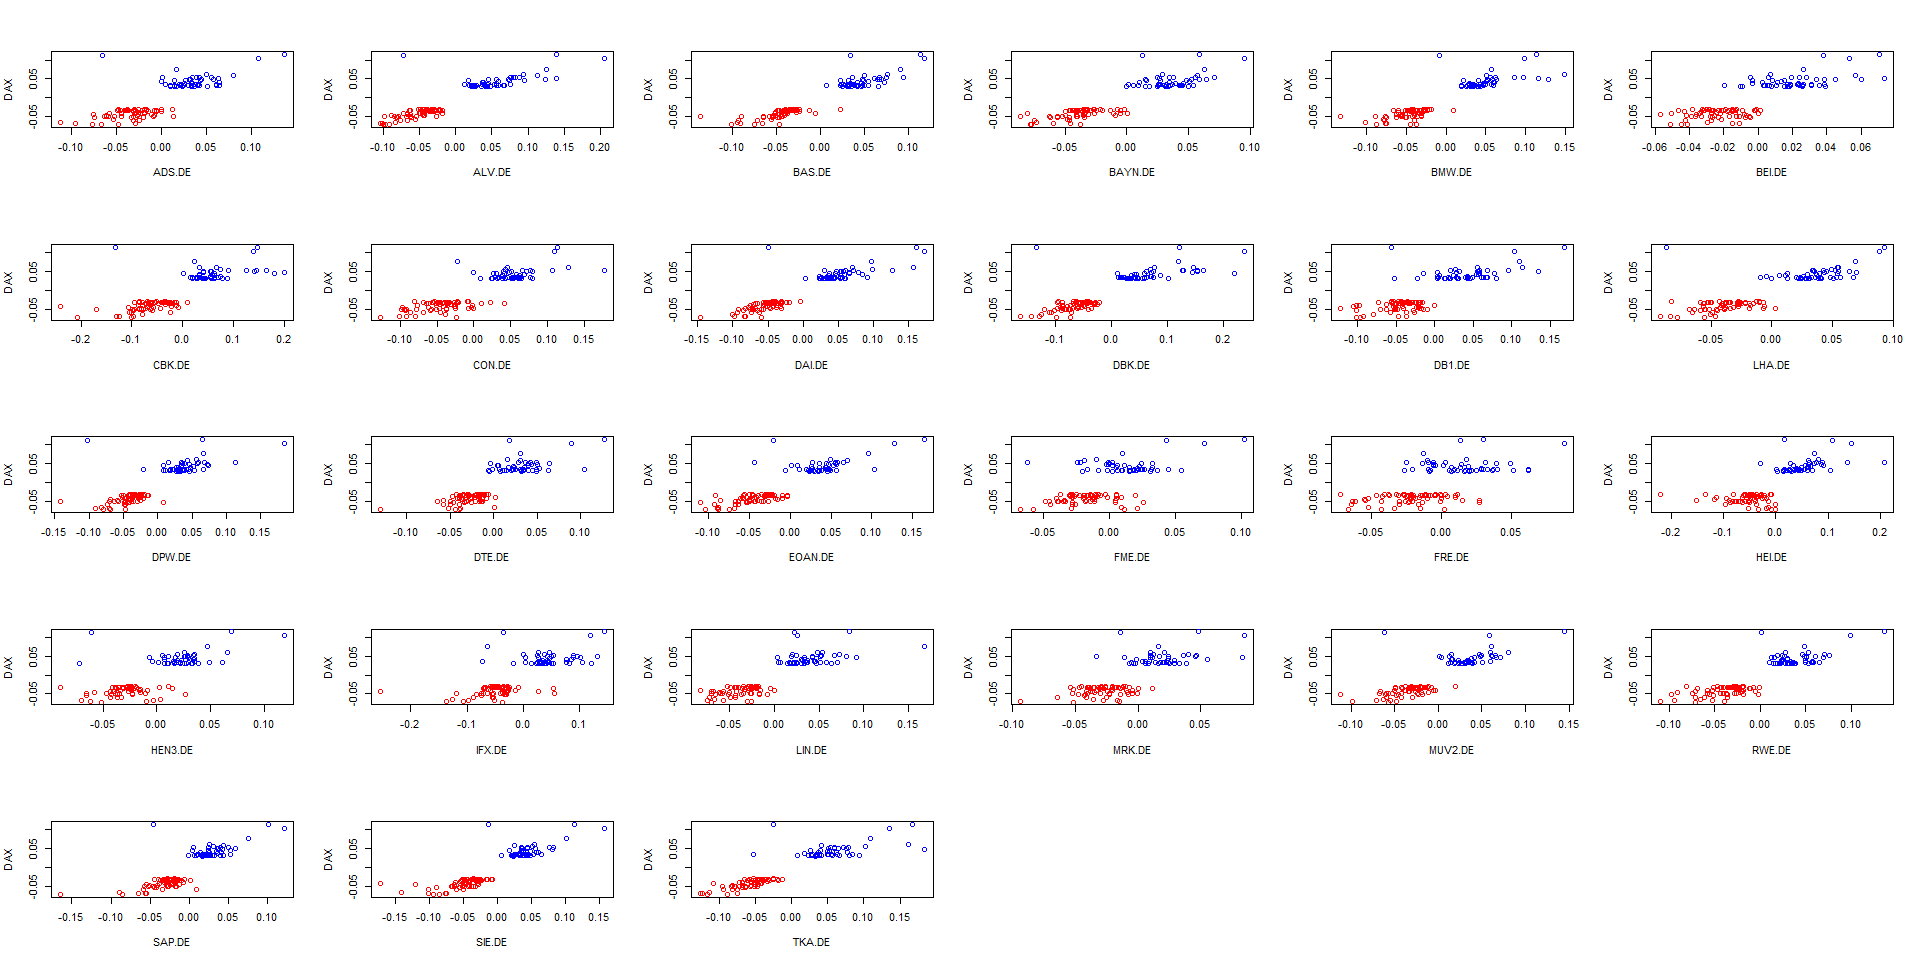 Scatterplots of returns, given DAX fell more than -3% (red) or grew more than +3% (blue)